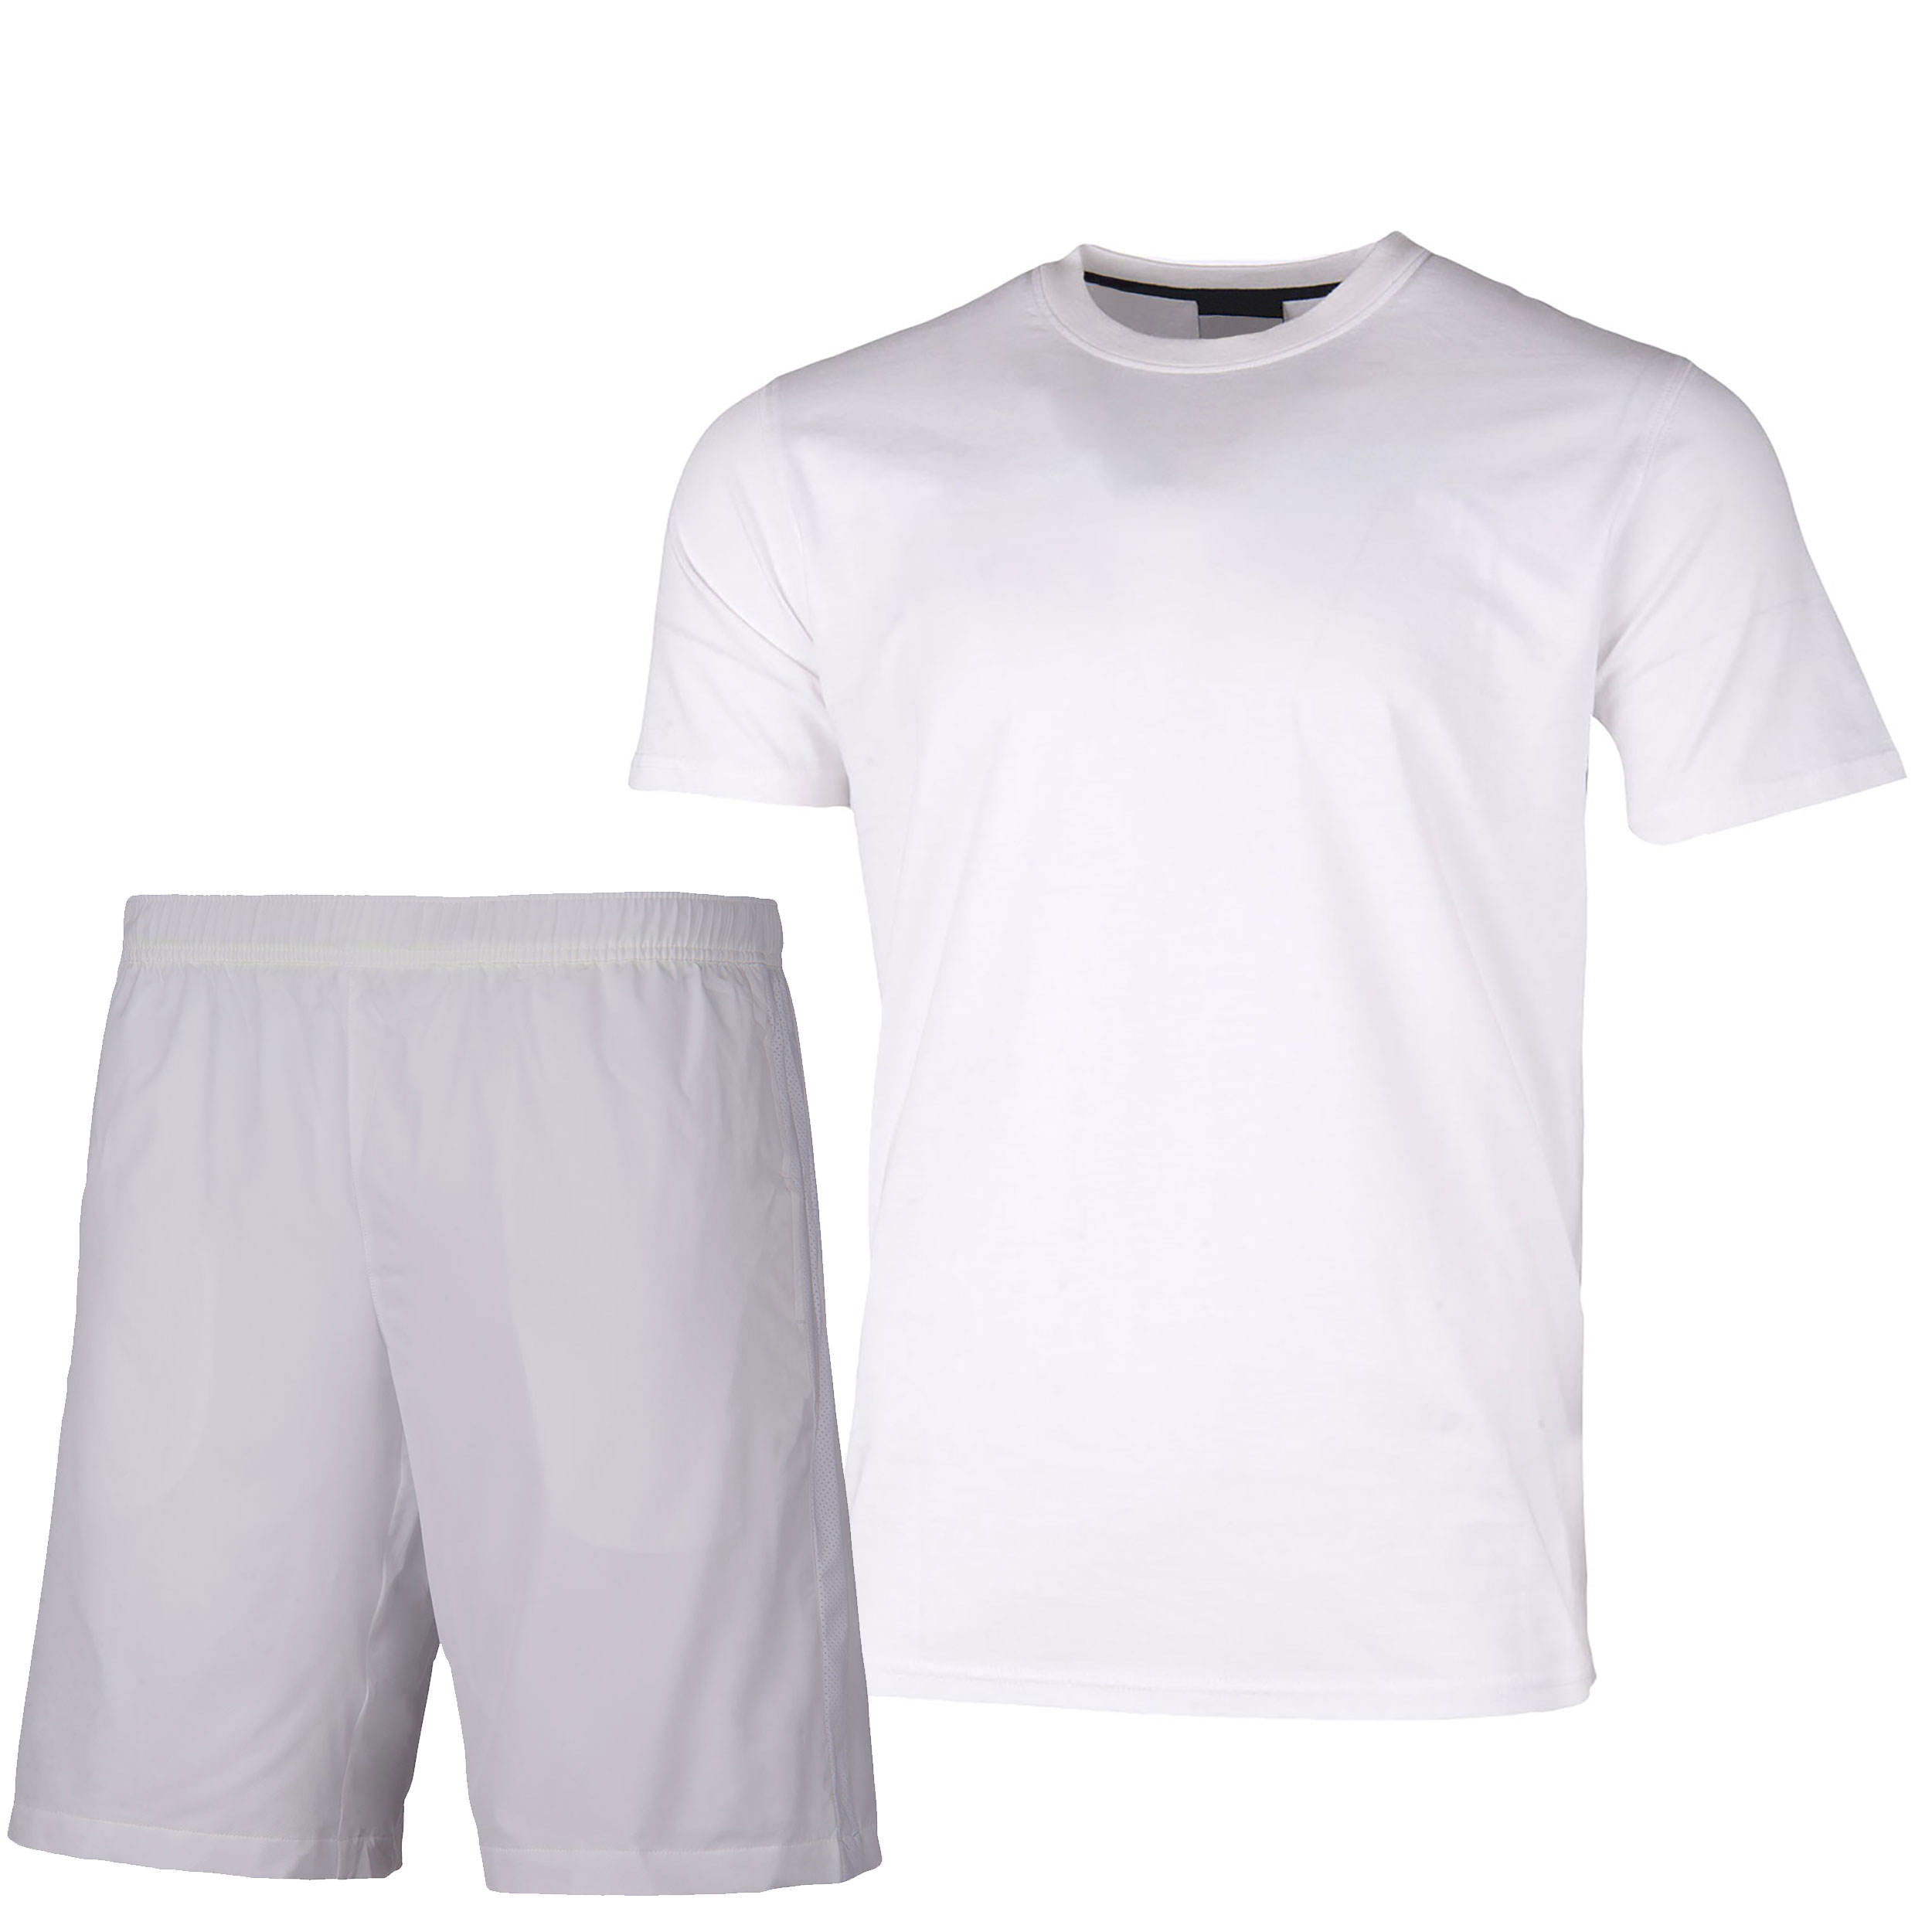 Tennis sports clothing customized new design badminton shirt